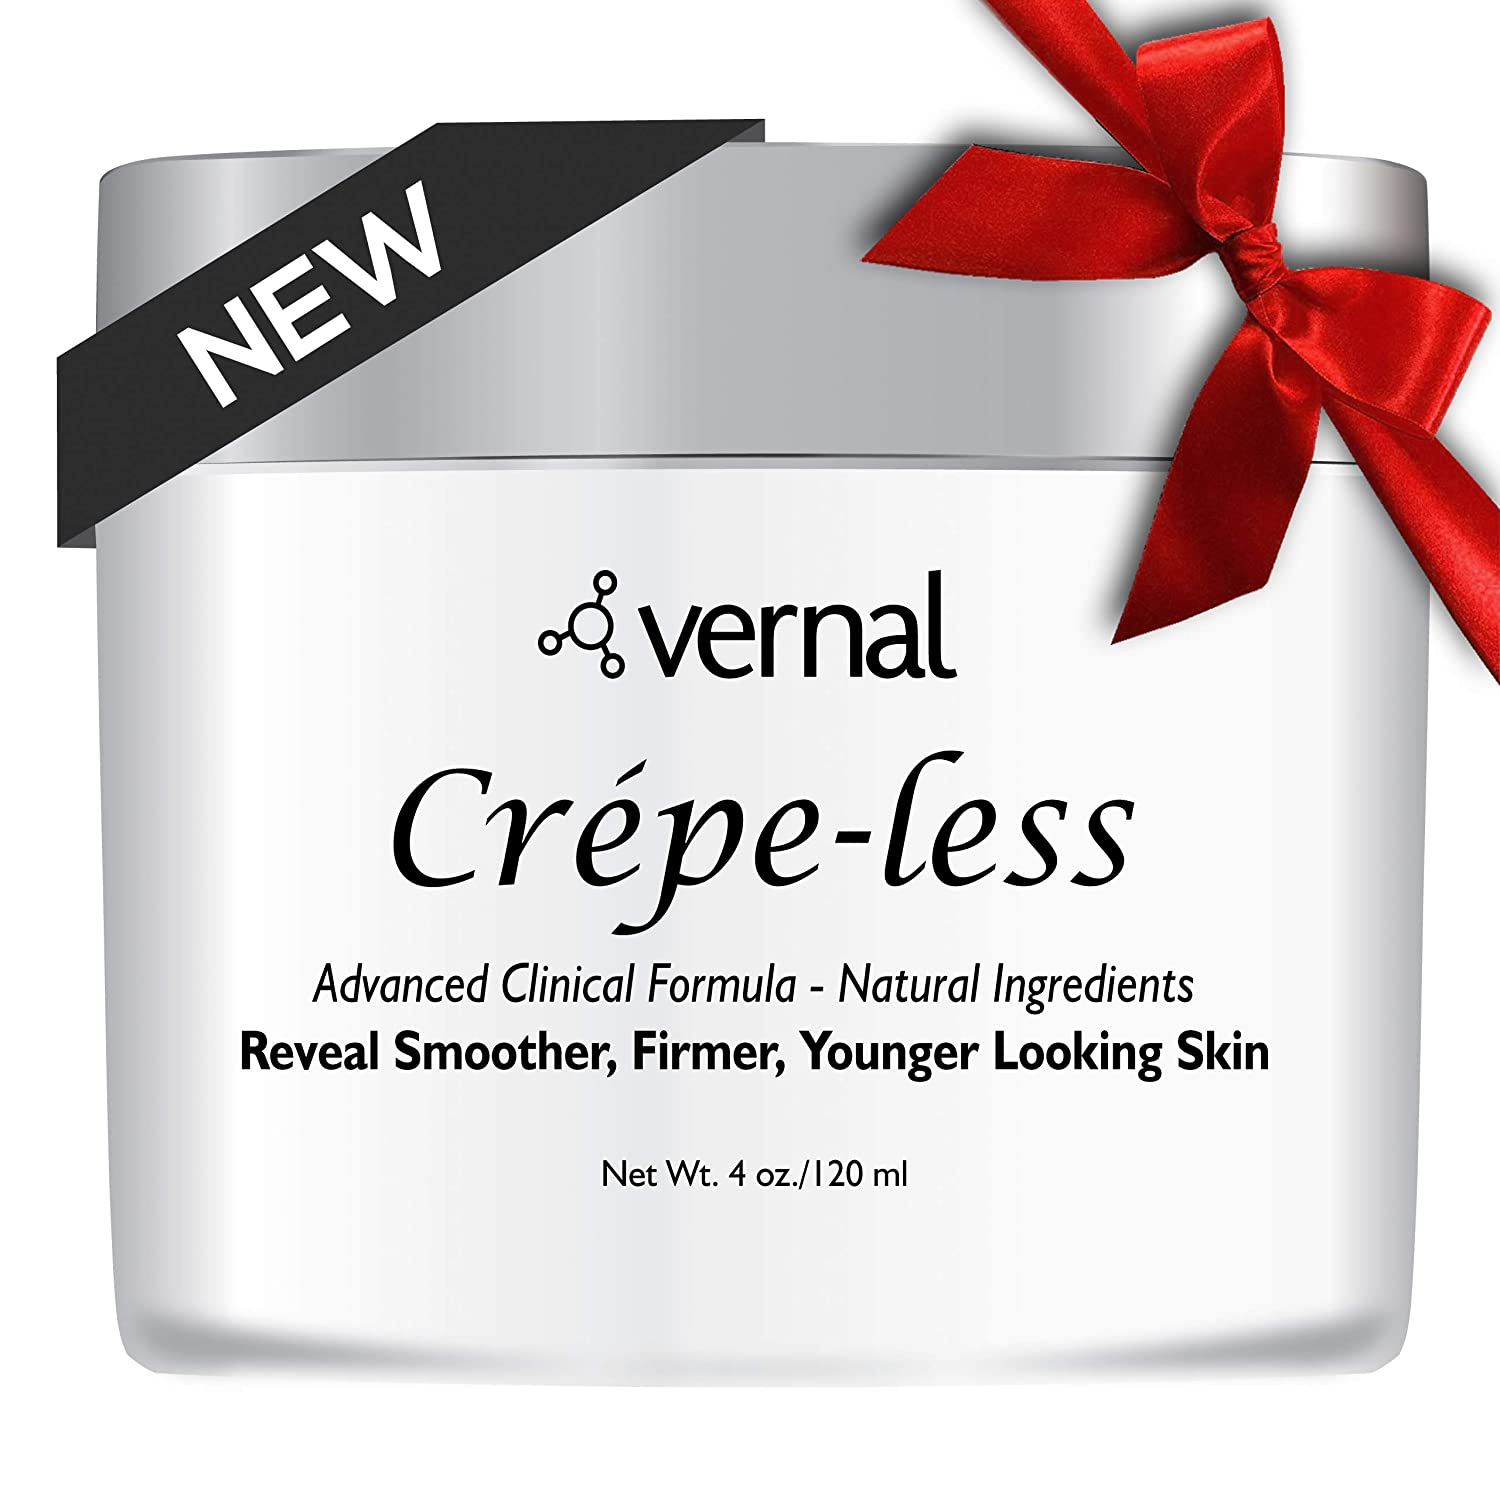 Crepe-less skin firming cream to repair crepey arms and neck